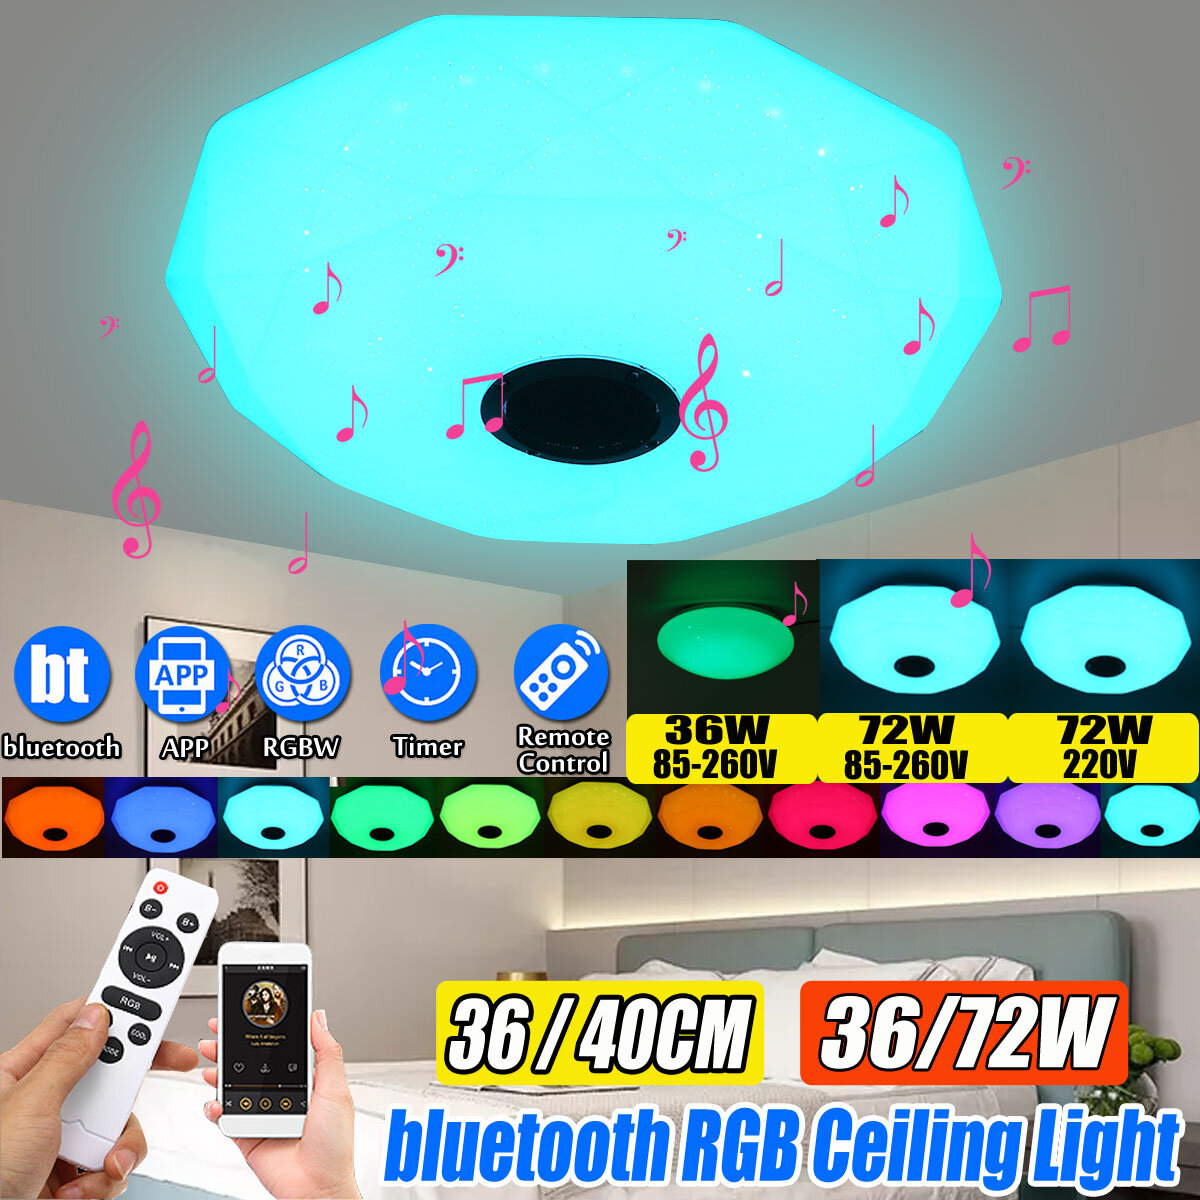 LED Panel Lamp Ceiling Light Remote Control APP RGB Bluetooth Music Smart Ceiling Light, Banggood  - buy with discount